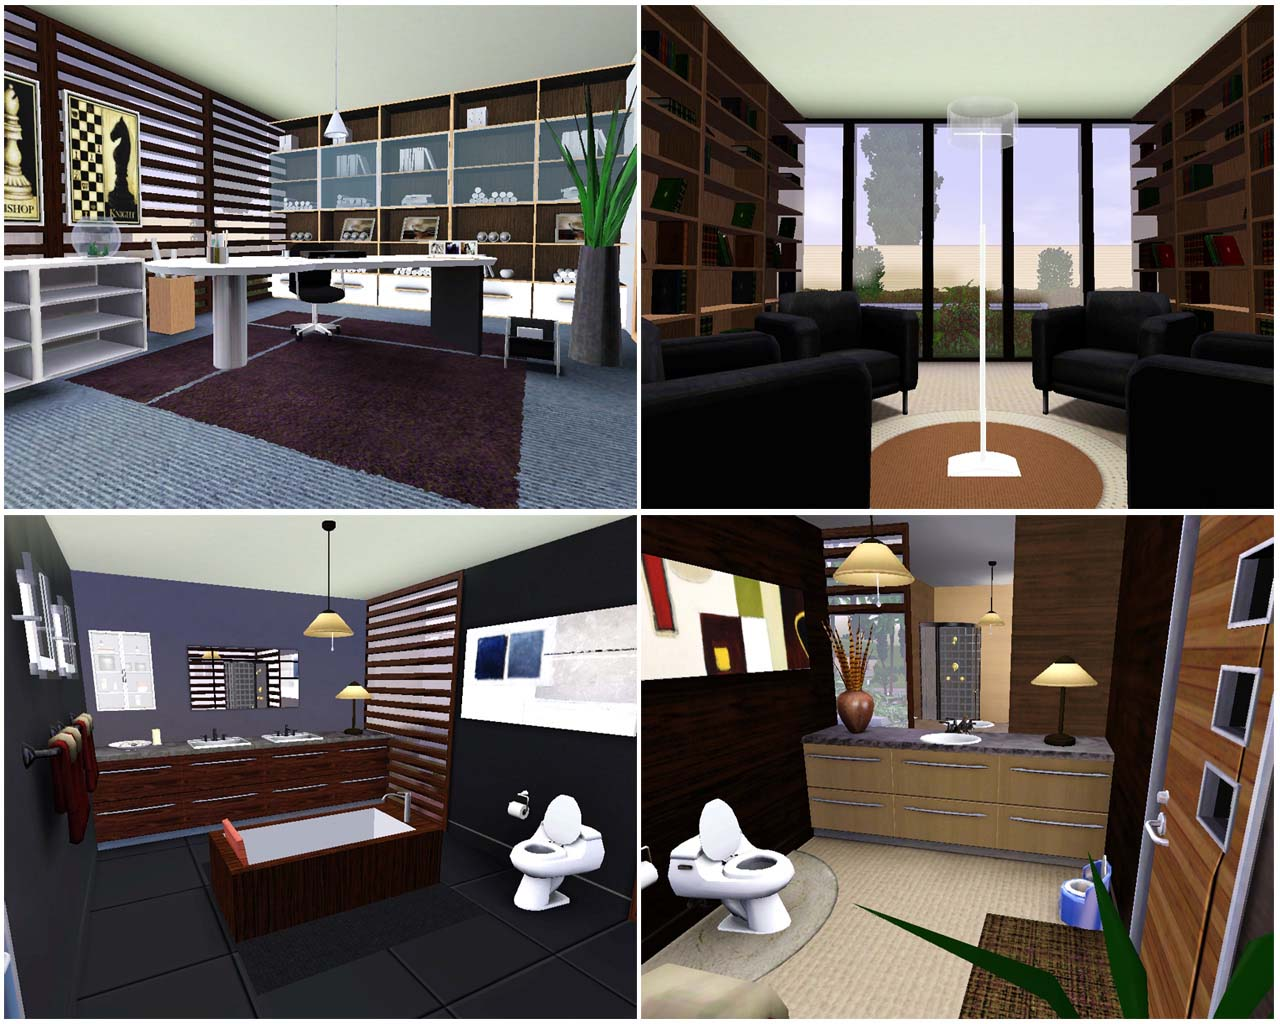 Sims 3 Modern House Interior Design